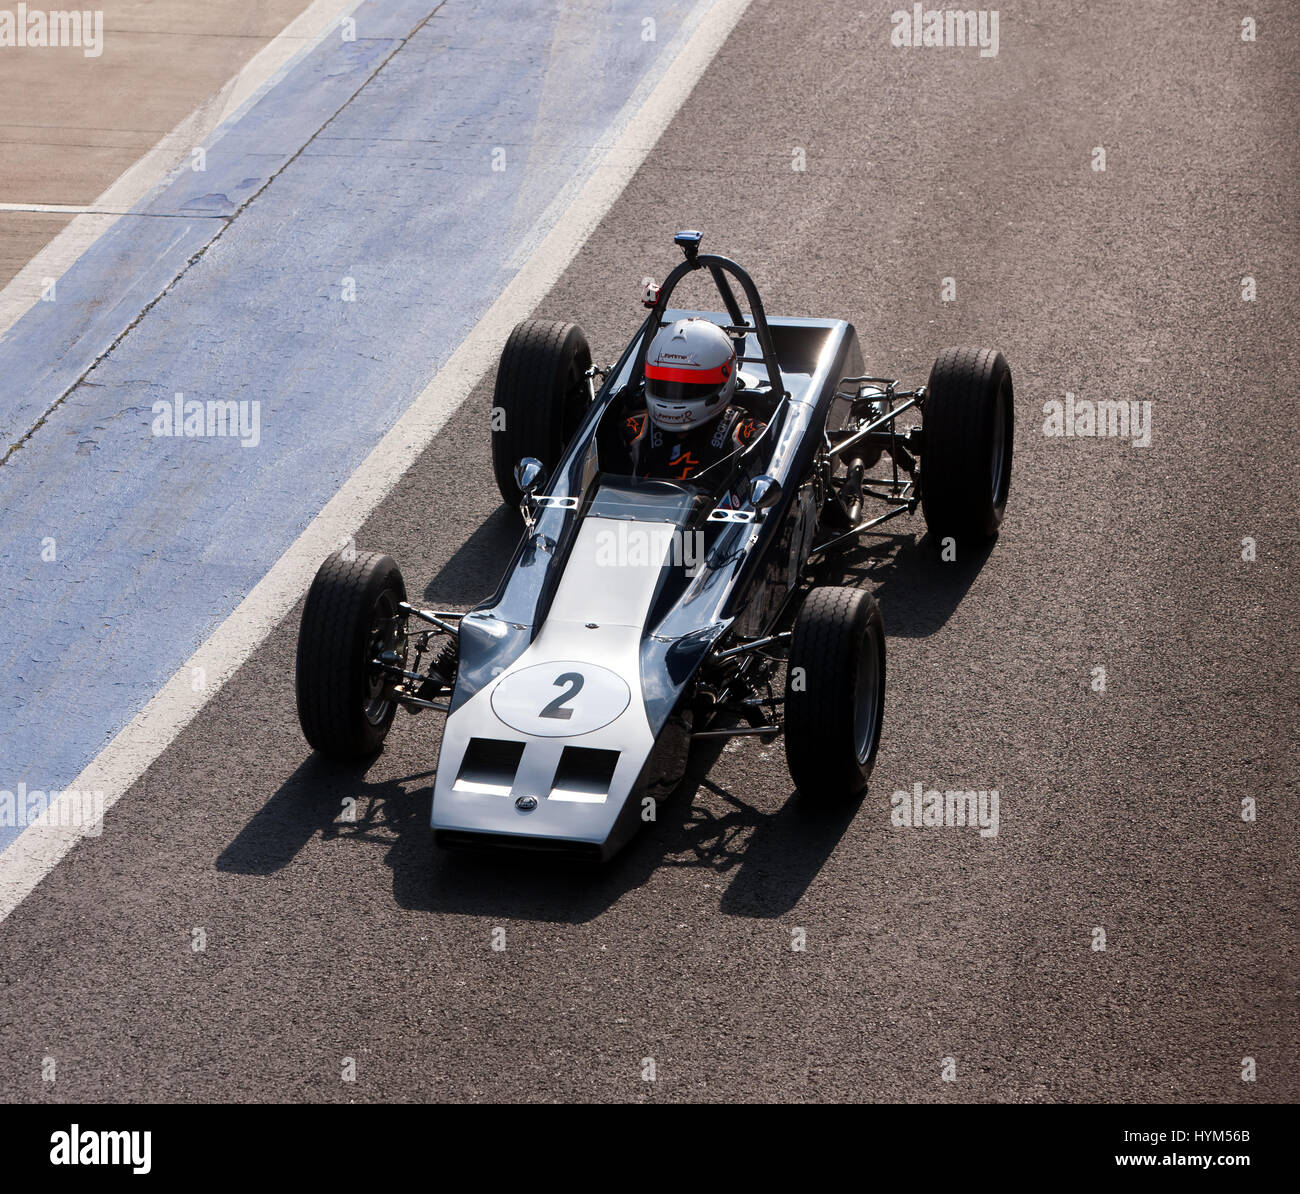 Formula Ford Stock Photos & Formula Ford Stock Images - Alamy